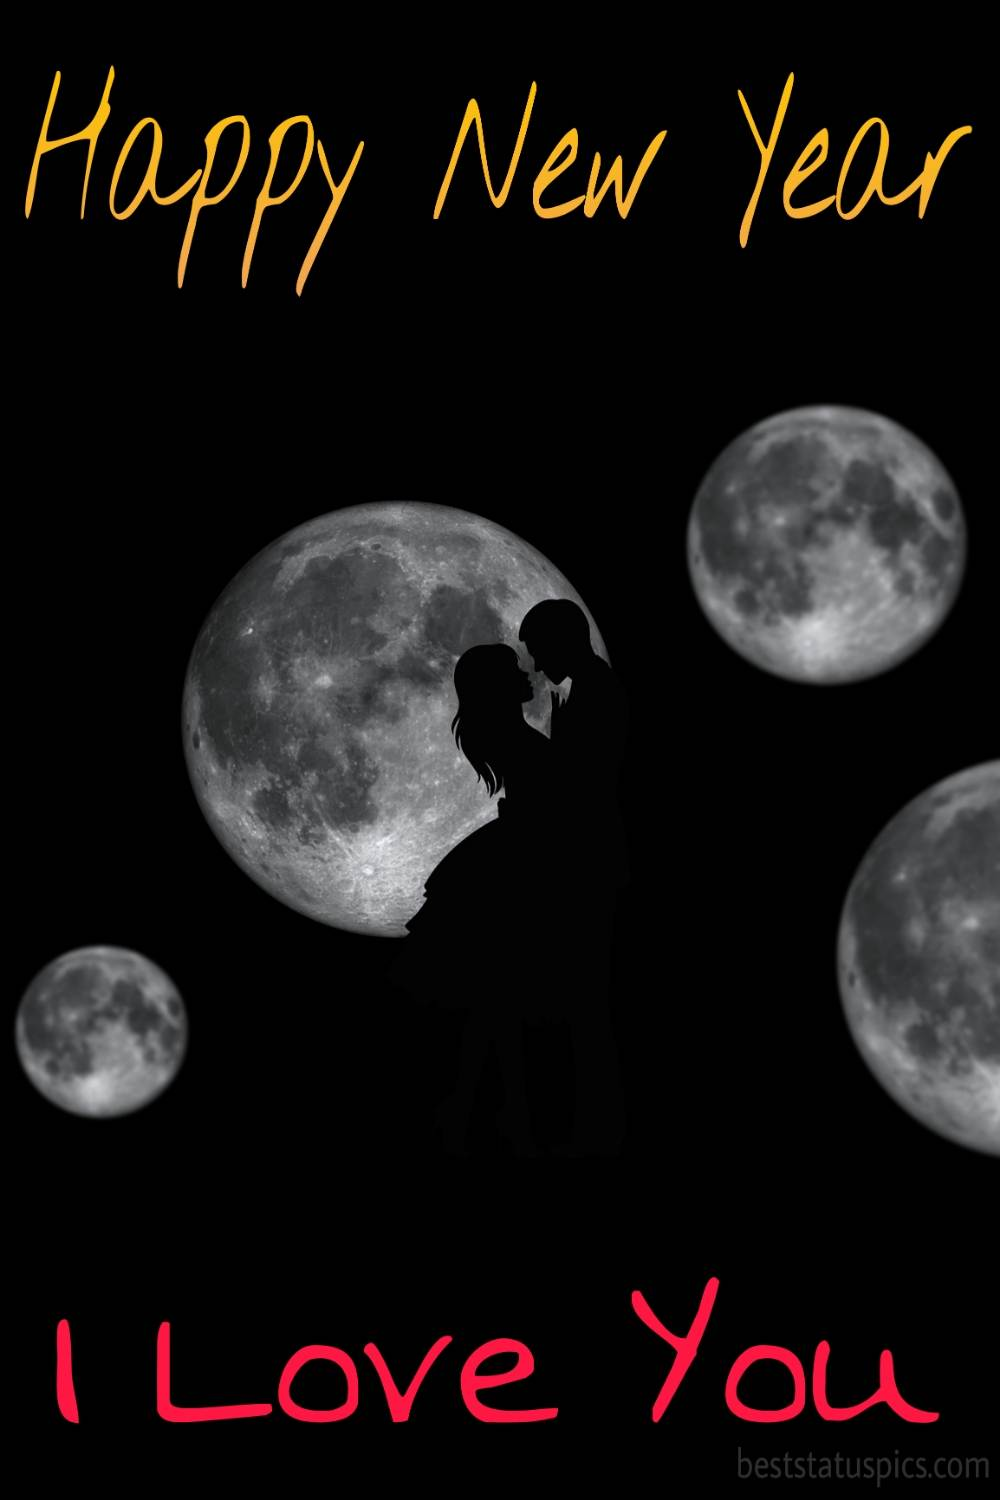 Romantic Happy new year 2022 and I love you wishes picture with moon for love